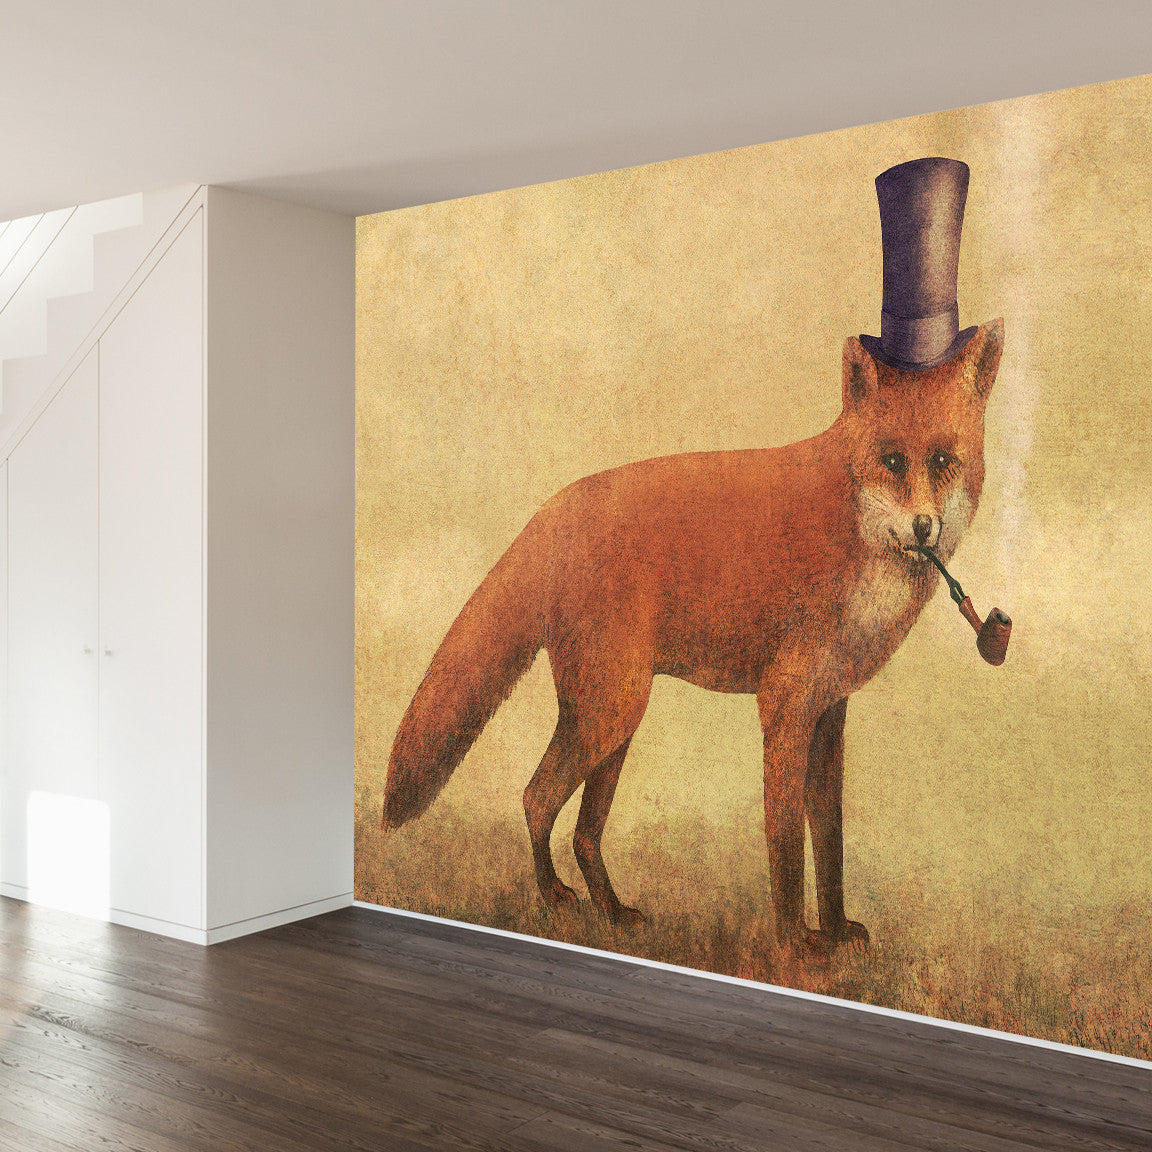 Crazy Like a Fox Wall Mural image